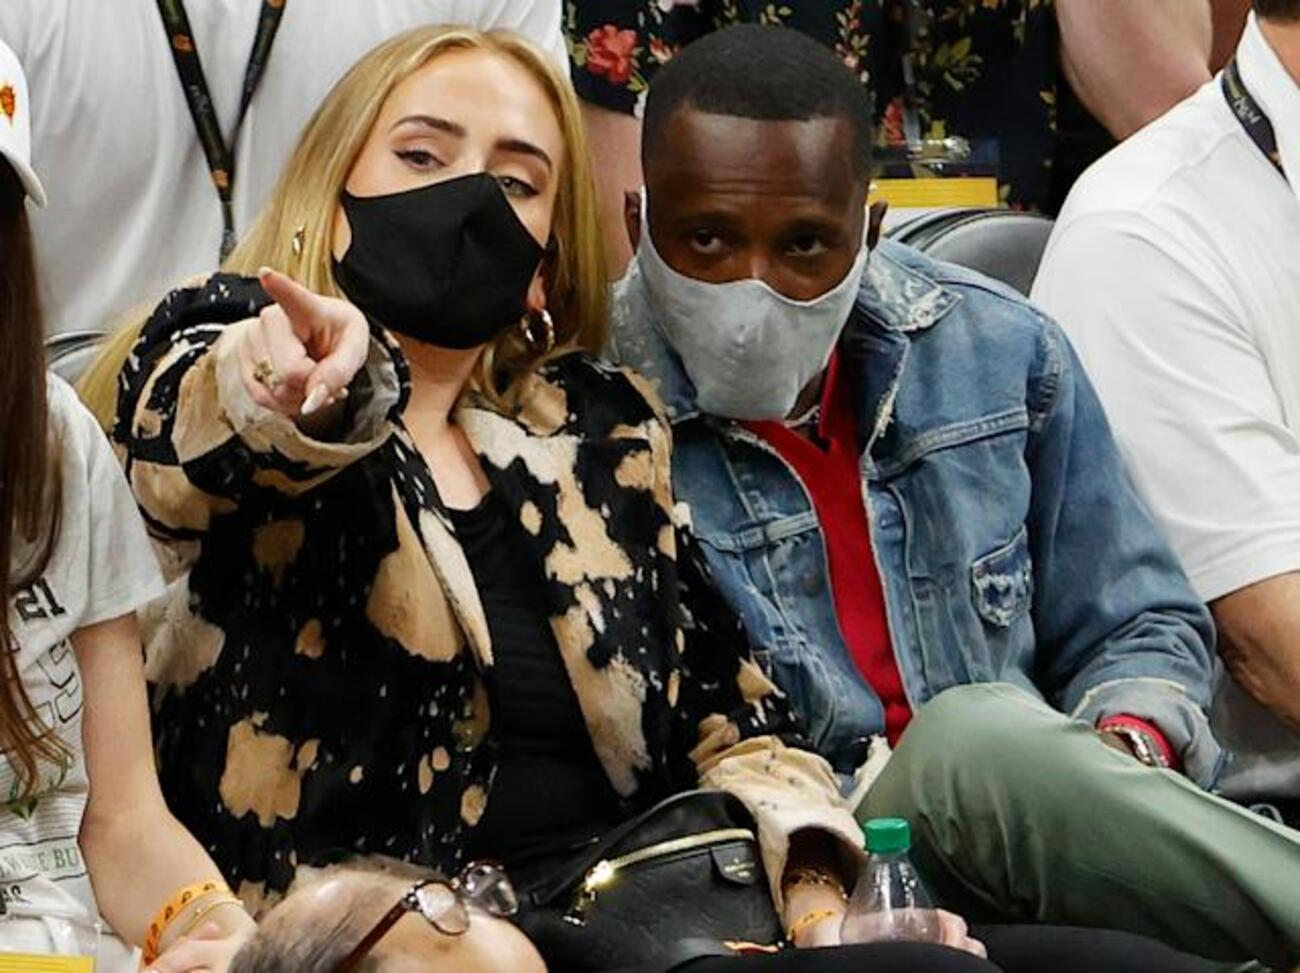 Adele recalls inception of her relationship with Rich Paul: 'I was a bit drunk' - Lakers Daily